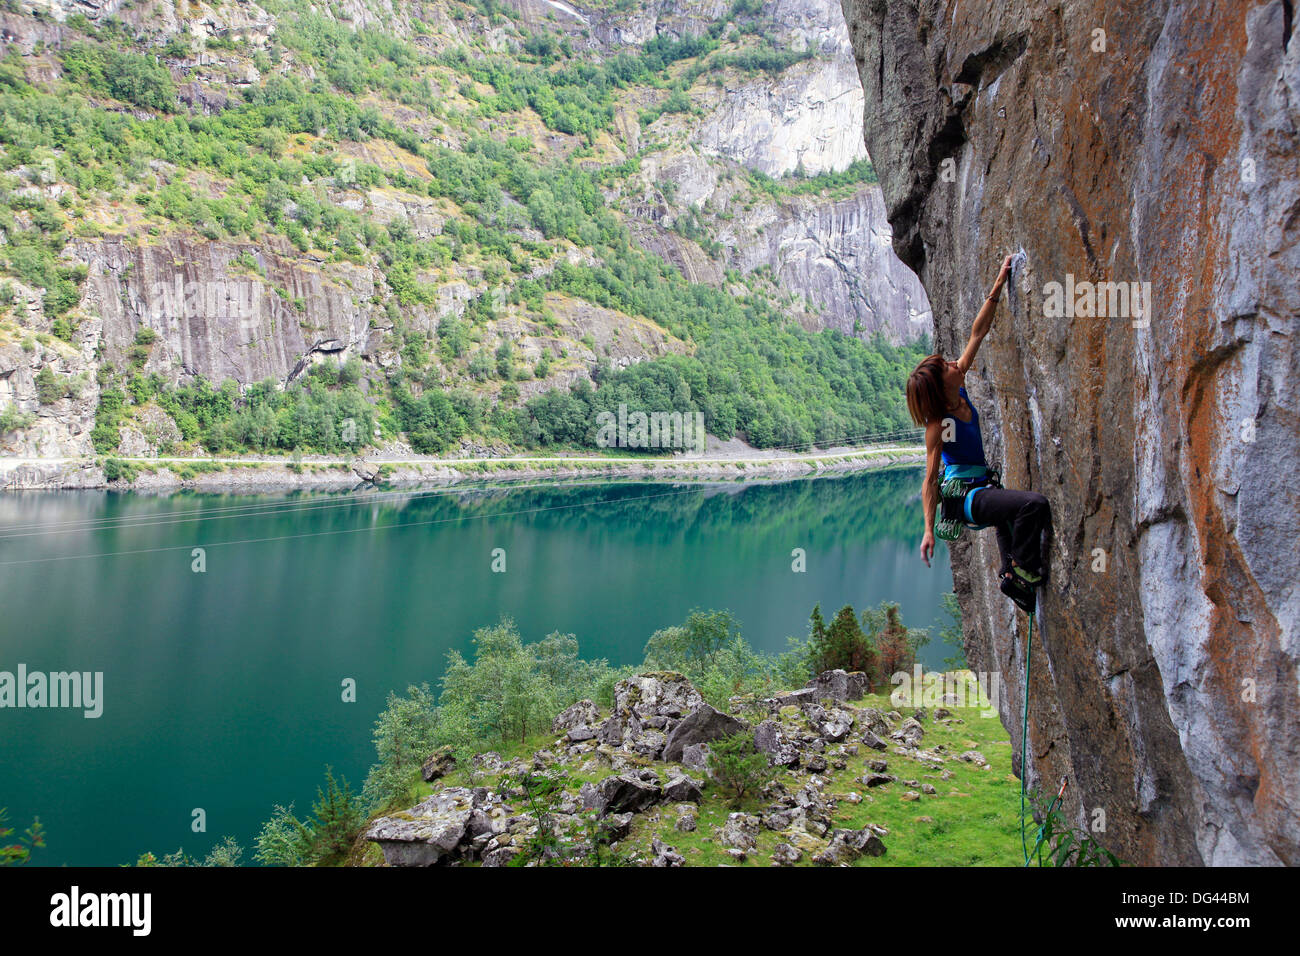 A female climber tackles a steep cliff at Loven, near Aurland, western Norway, Scandinavia, Europe - Stock Image